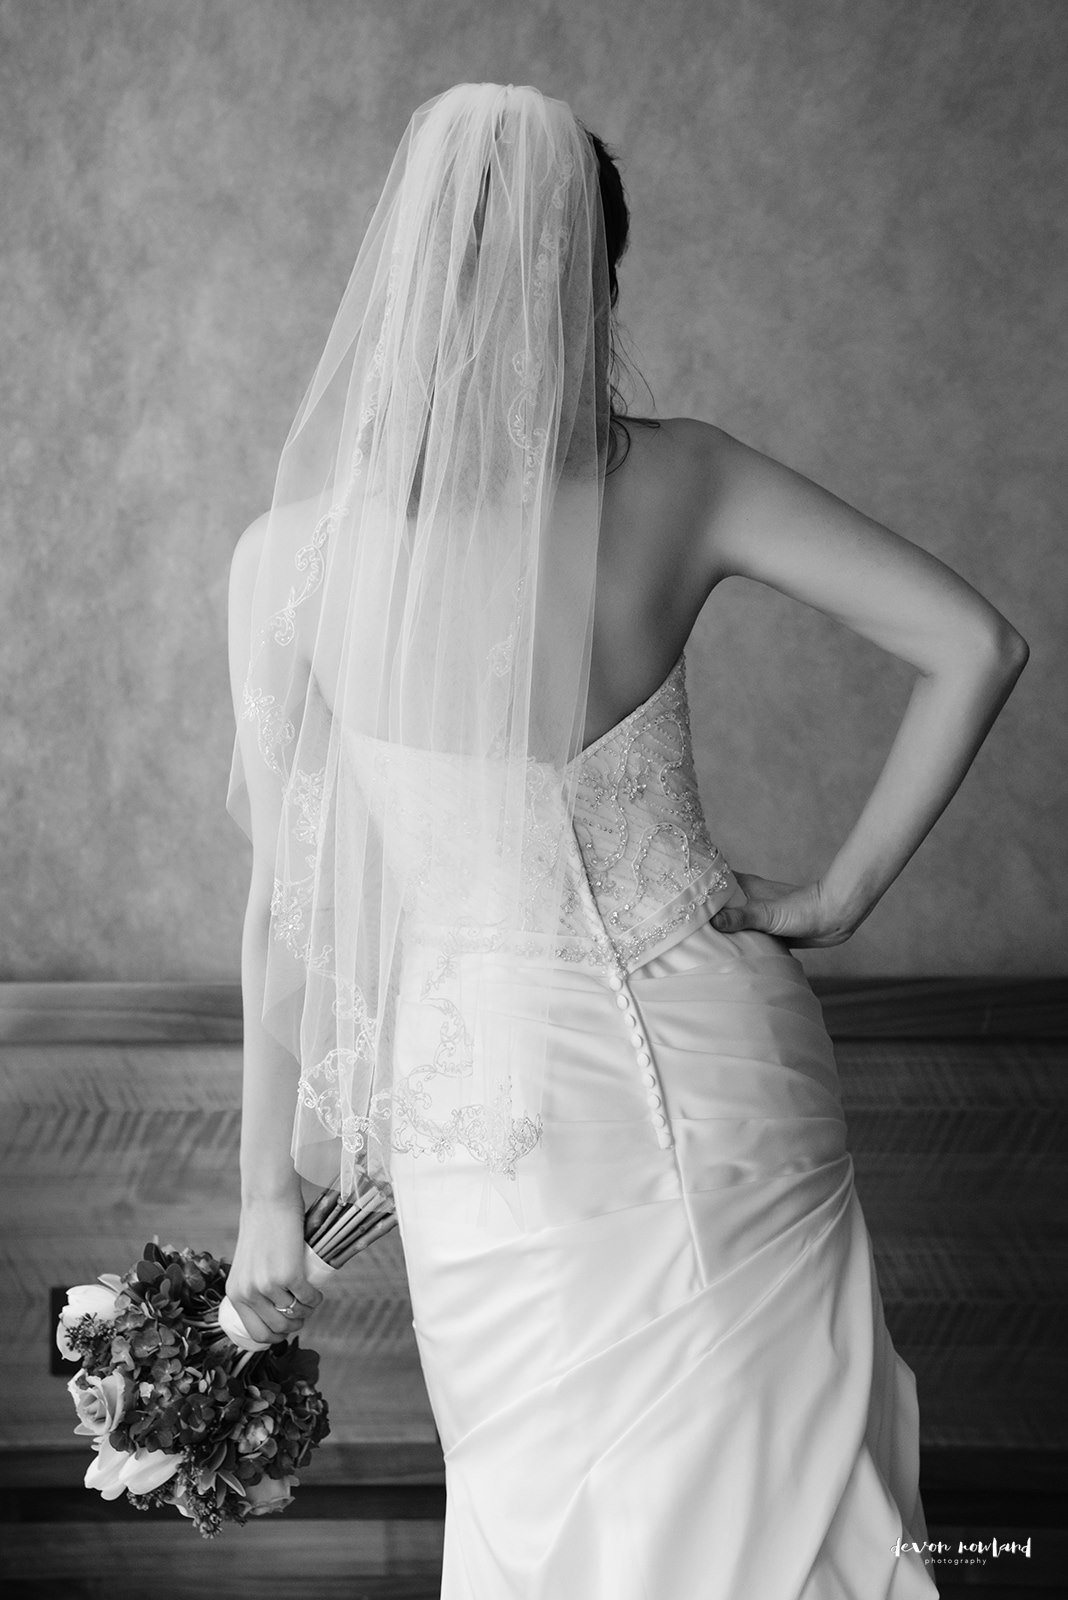 RJ-wedding-Four-Seasons-Baltimore-Devon-Rowland-Photography-2017-May07-6514_bw.jpg